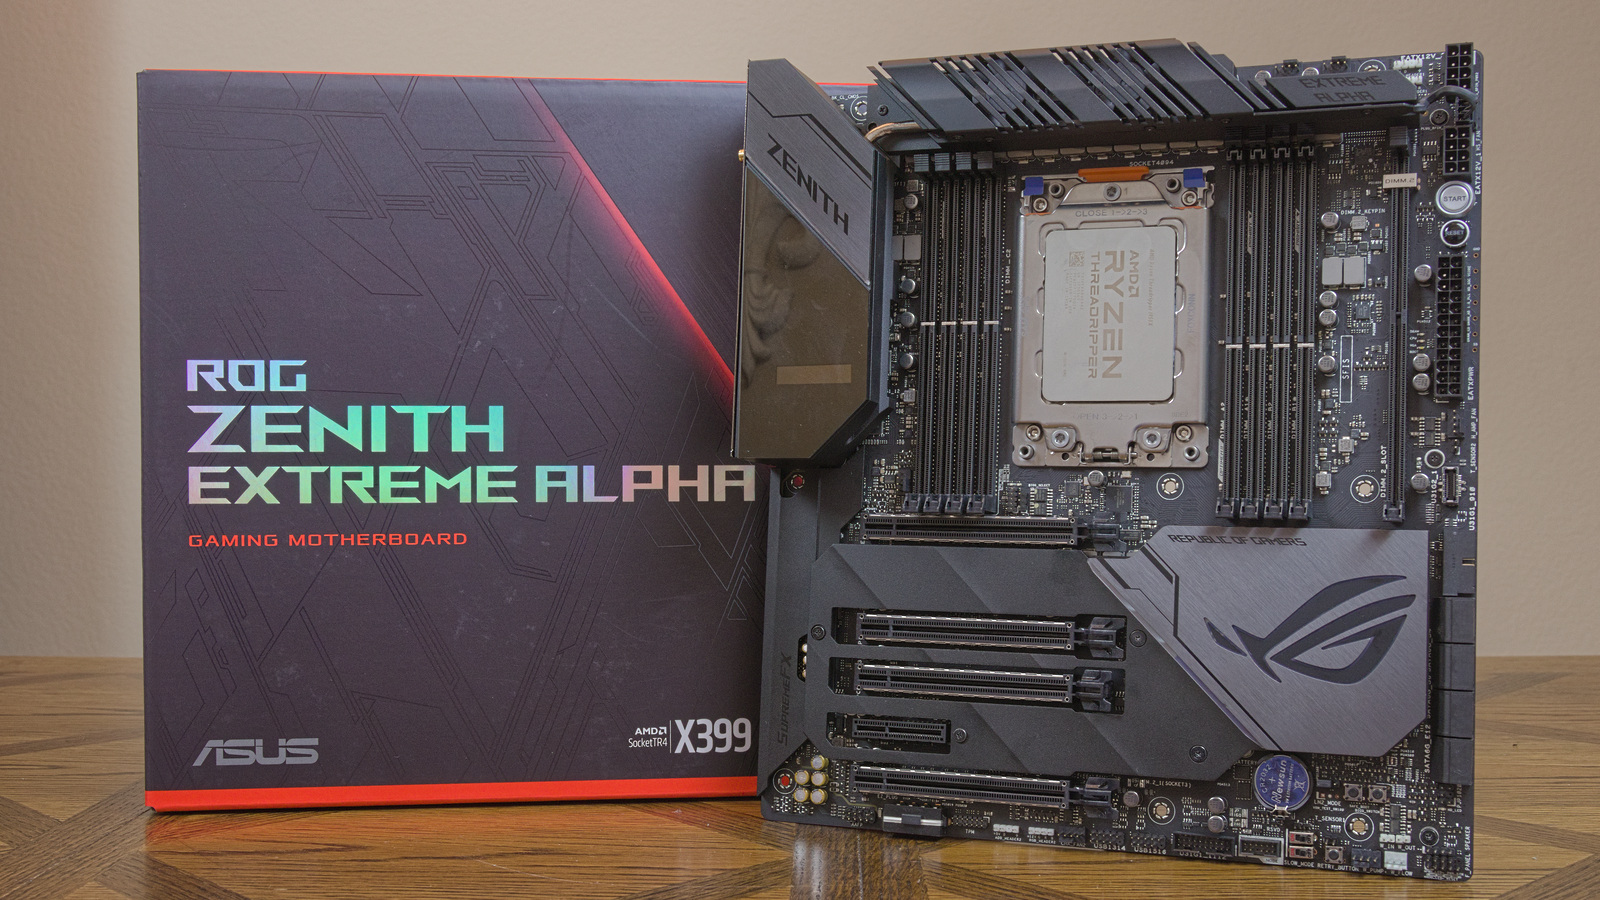 Asus Rog Zenith Extreme Alpha Review An X399 Thoroughbred Tom S Hardware Tom S Hardware